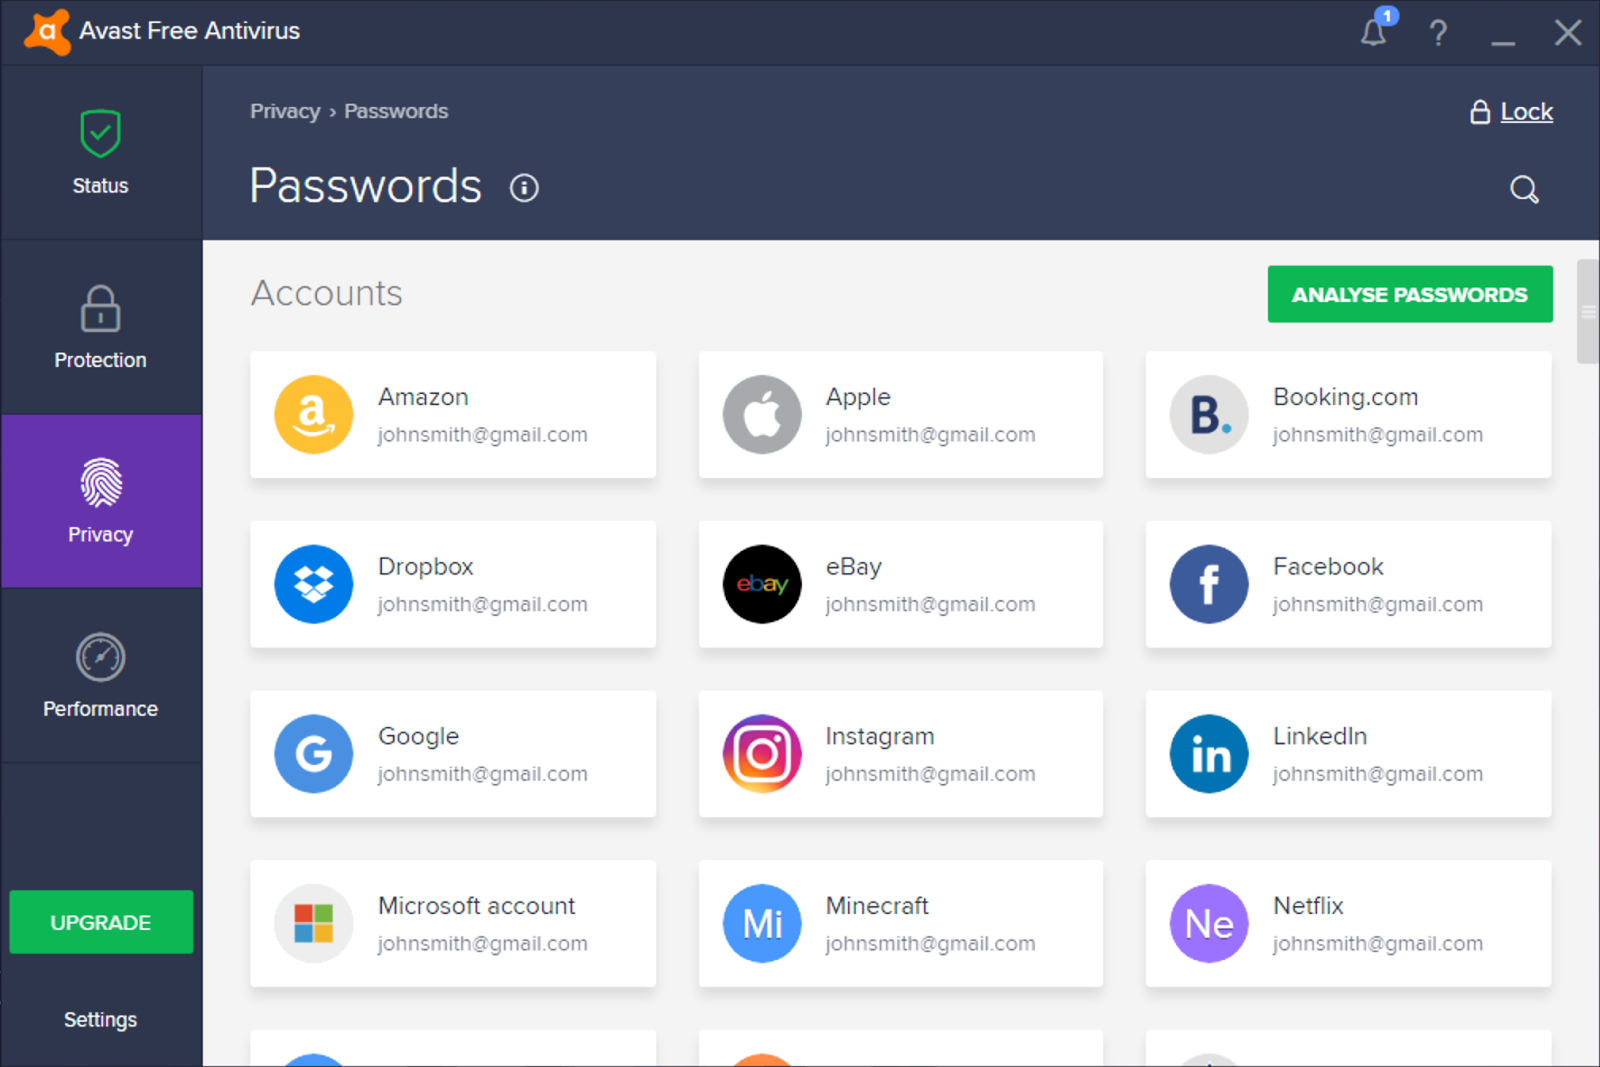 Avast Passwords is easy to use